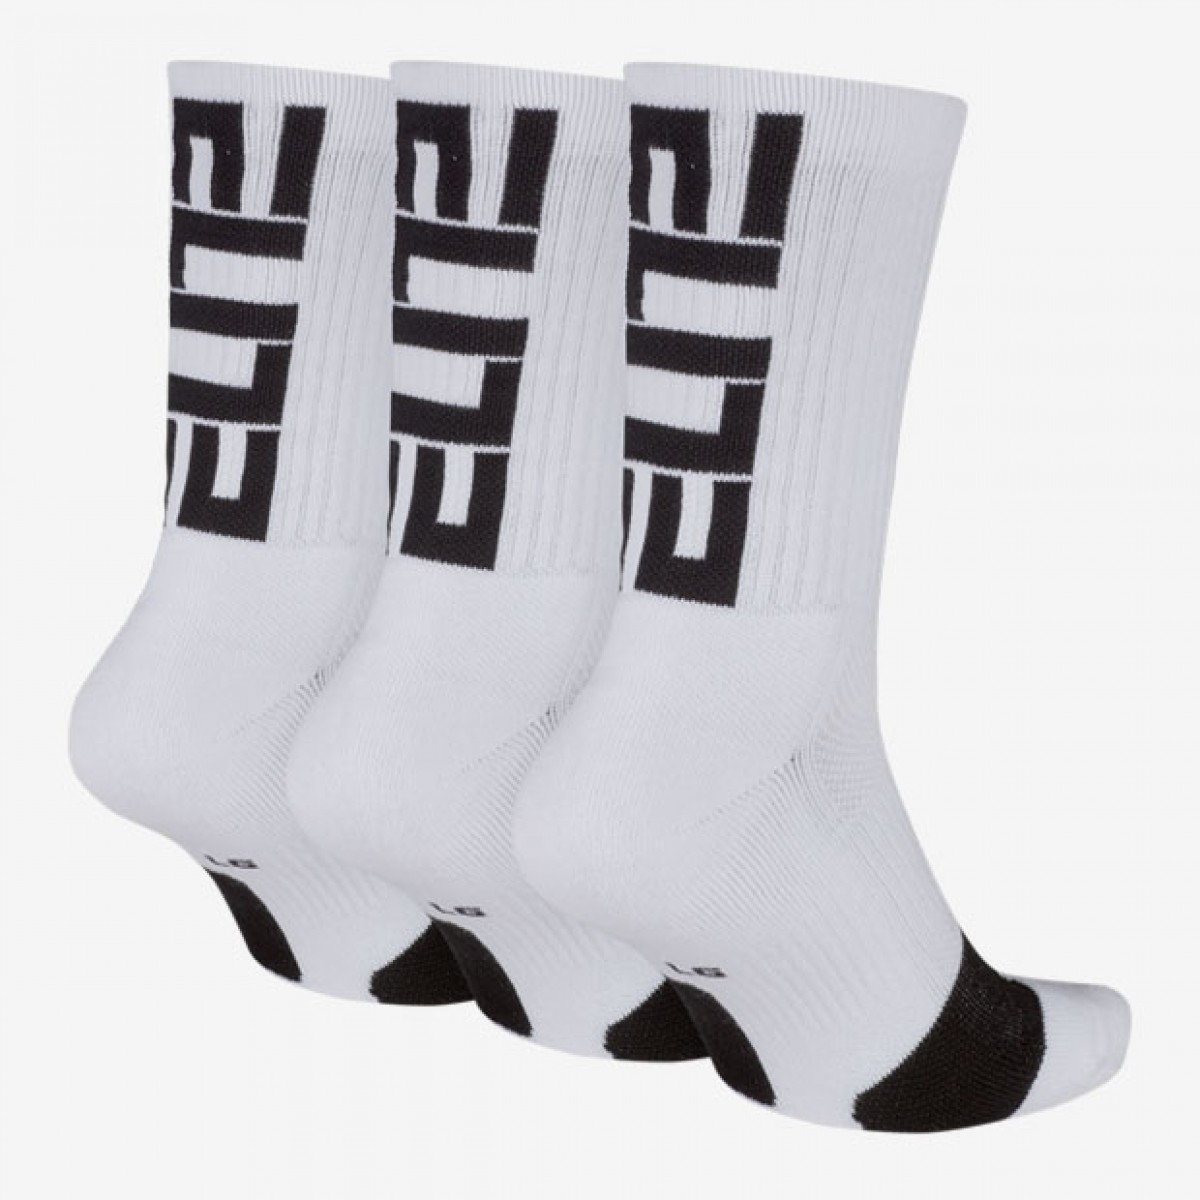 Nike Elite Crew 3 Pack Socks 'White' SX7627-100